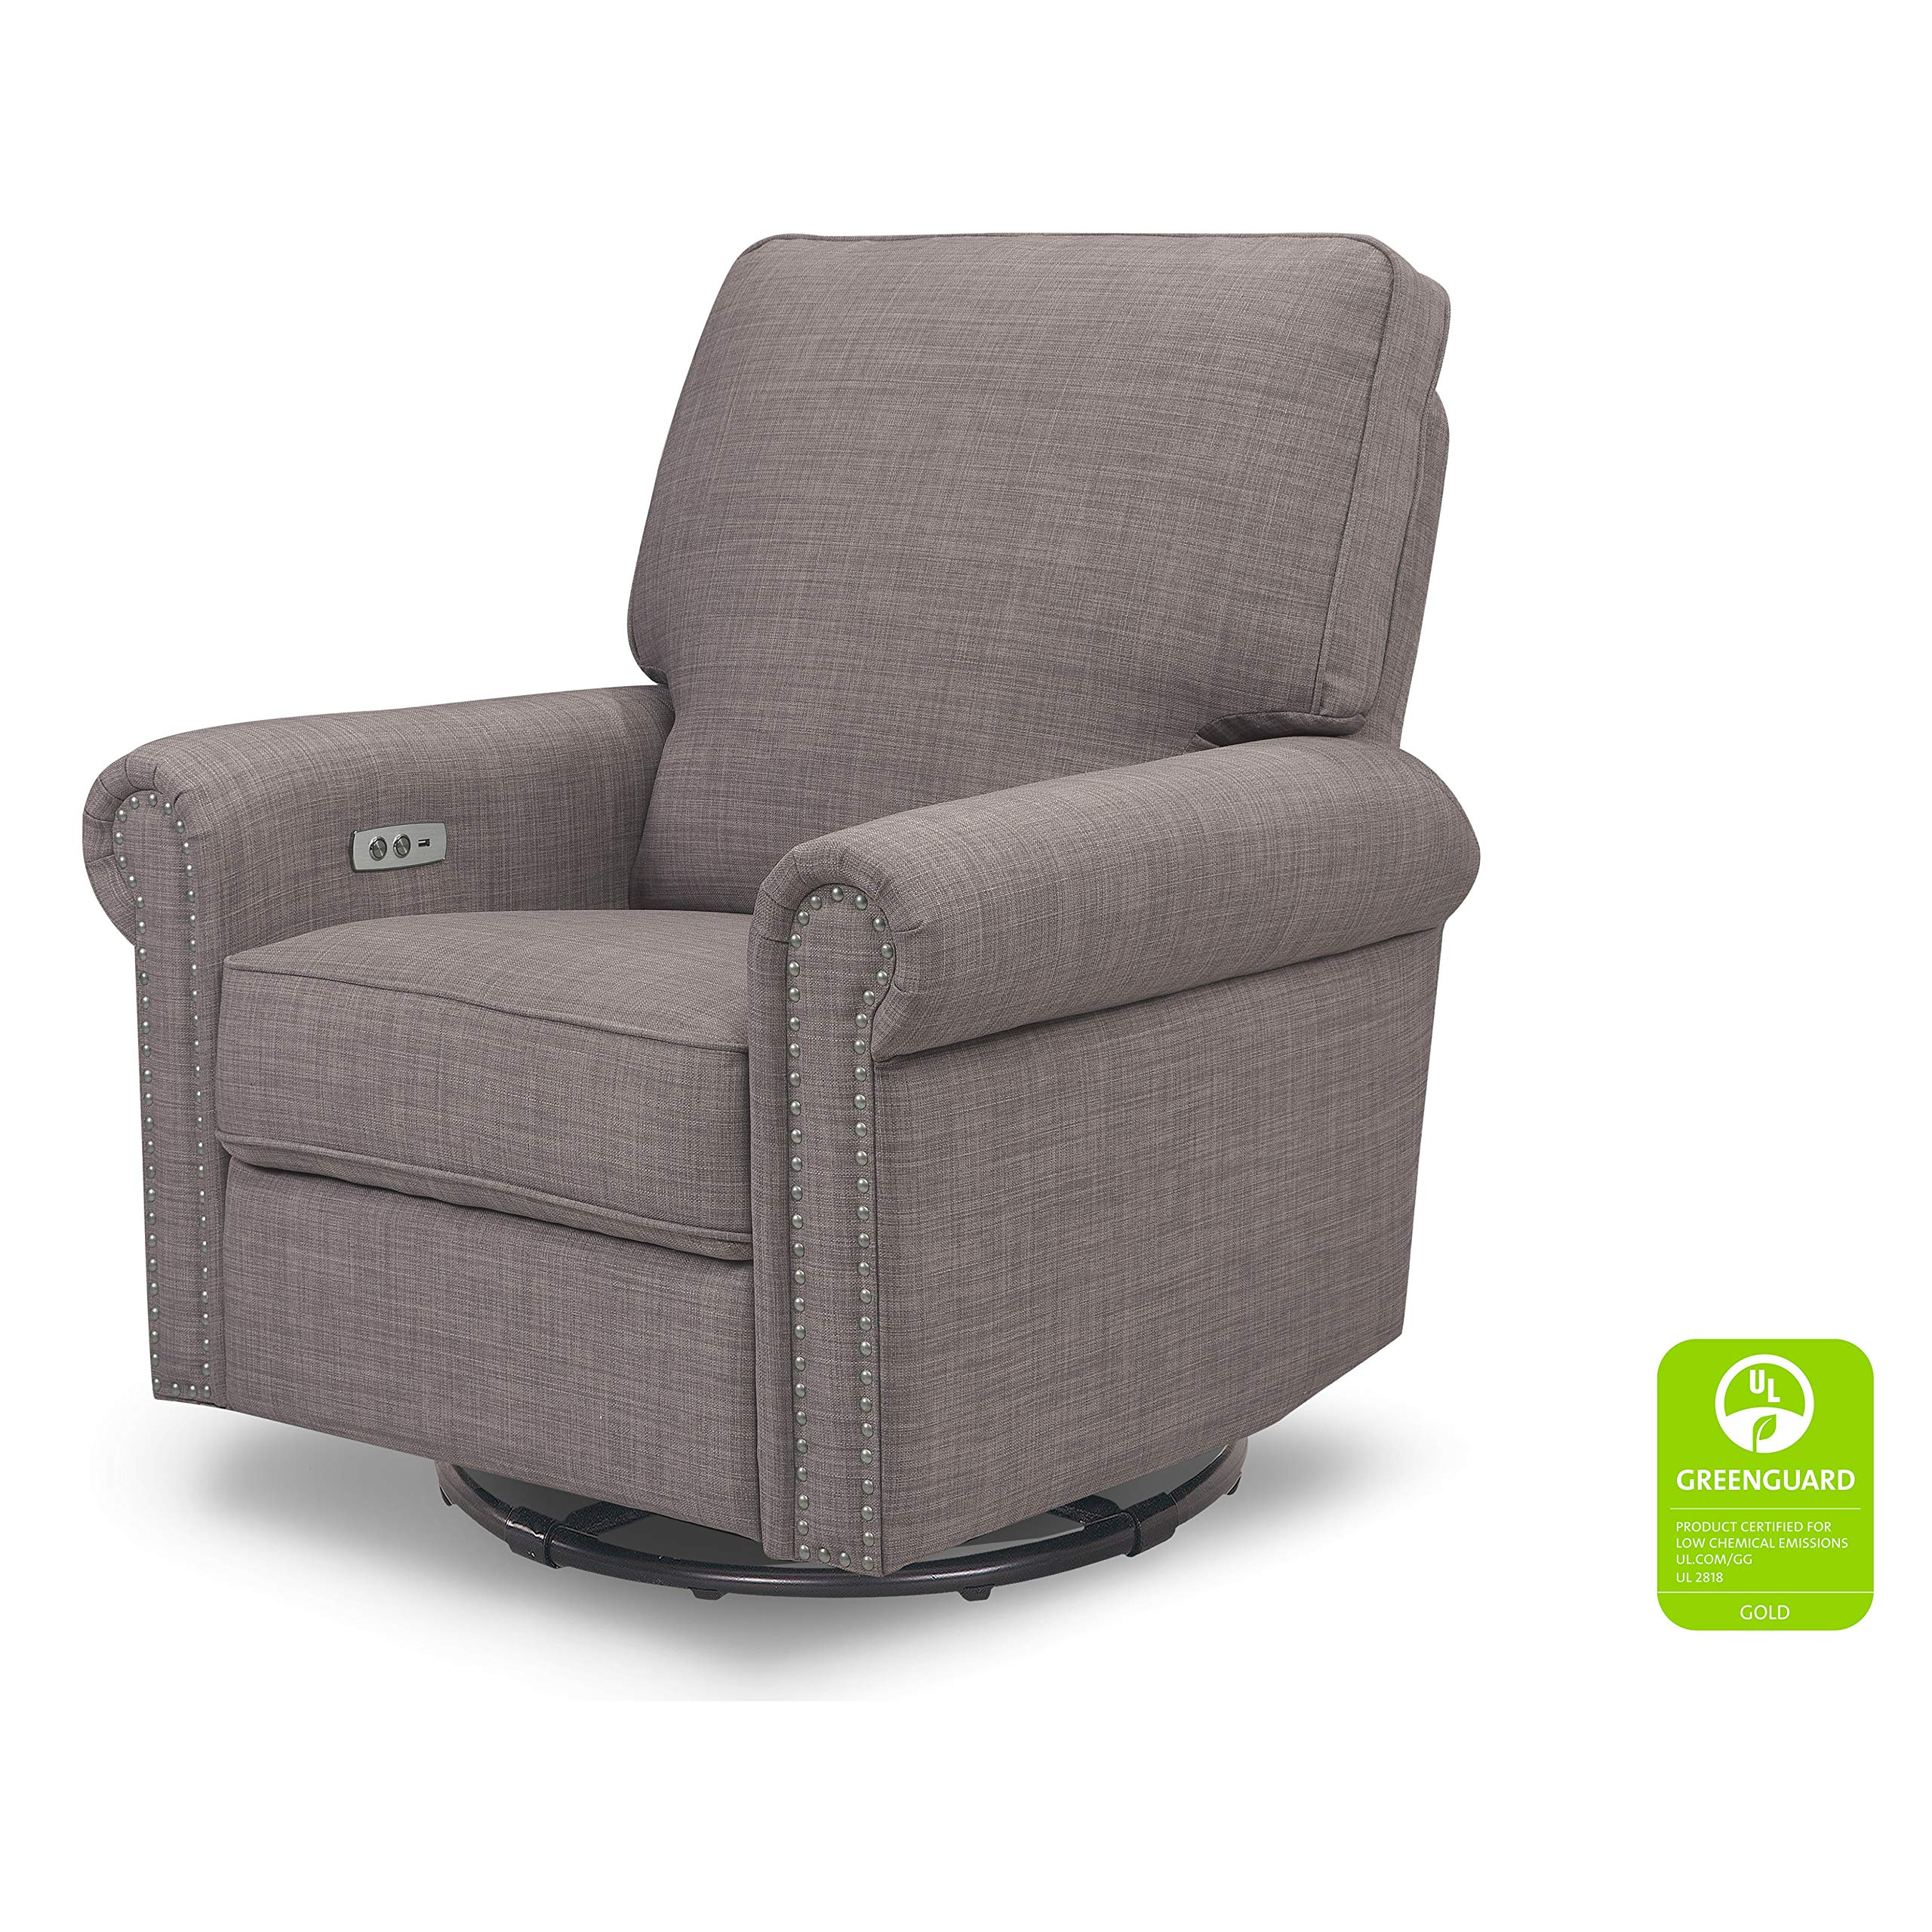 Million Dollar Baby Classic Linden Power Recliner and Swivel Glider in Grey Tweed | USB Charging Port | Push-Button Electronic Reclining Mechanism by Million Dollar Baby Classic